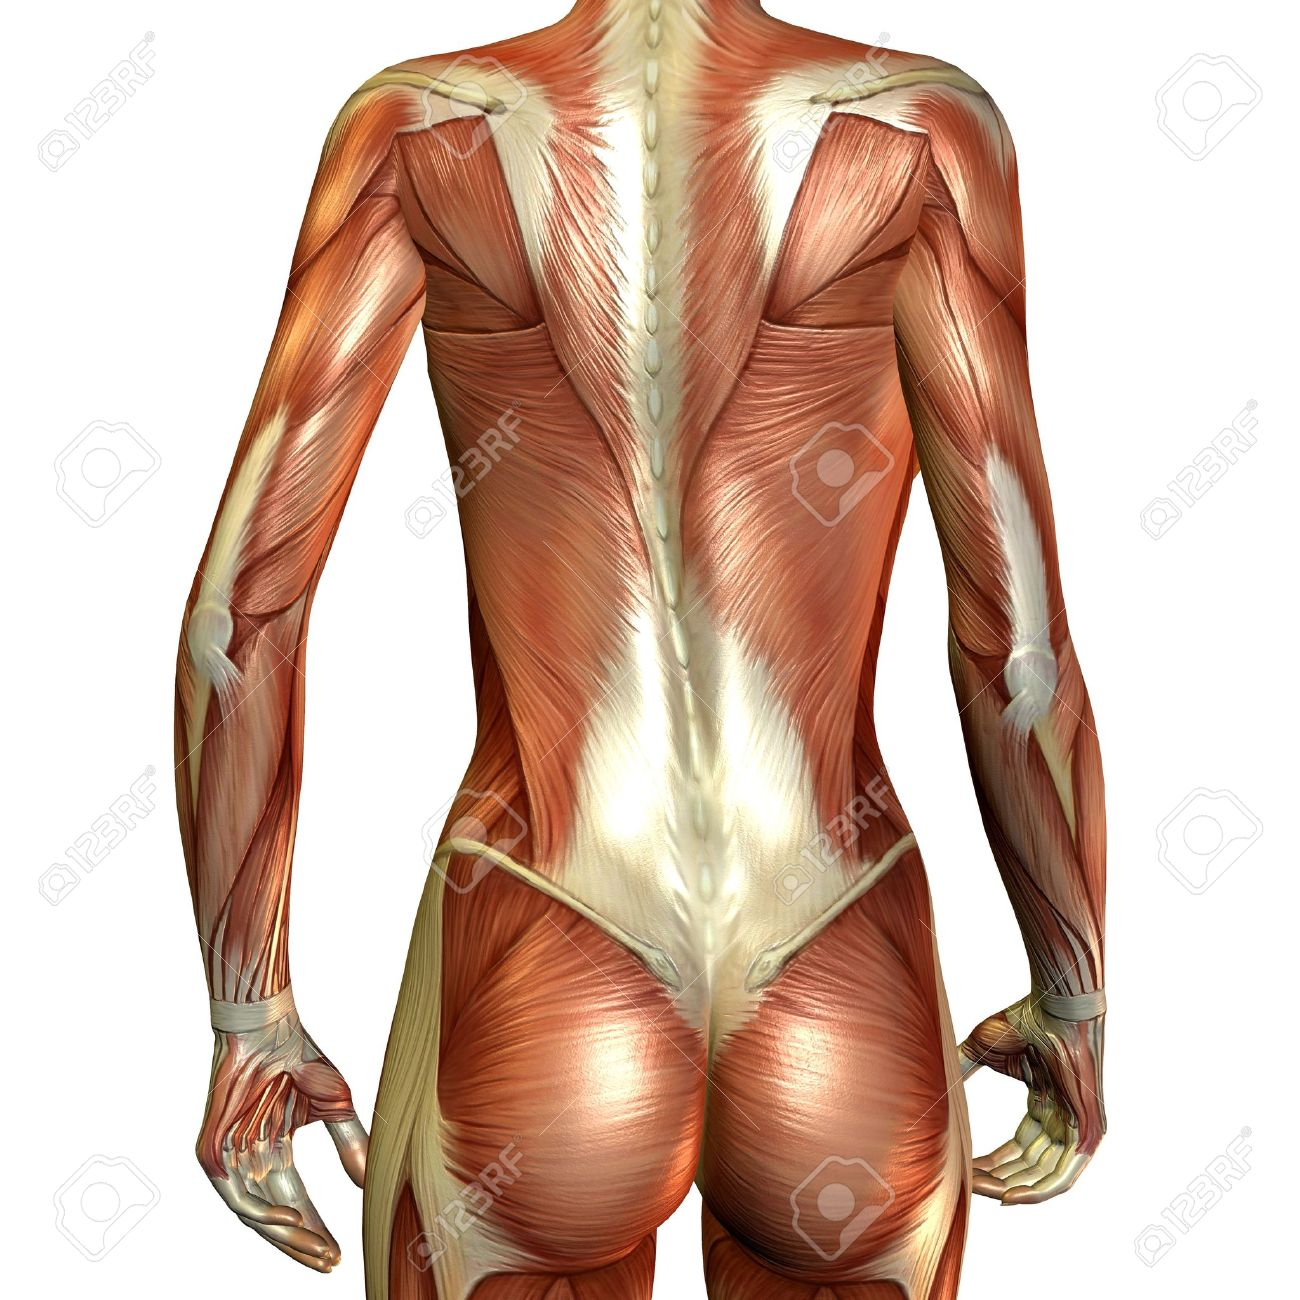 muscle fibers stock photos & pictures. royalty free muscle fibers, Muscles